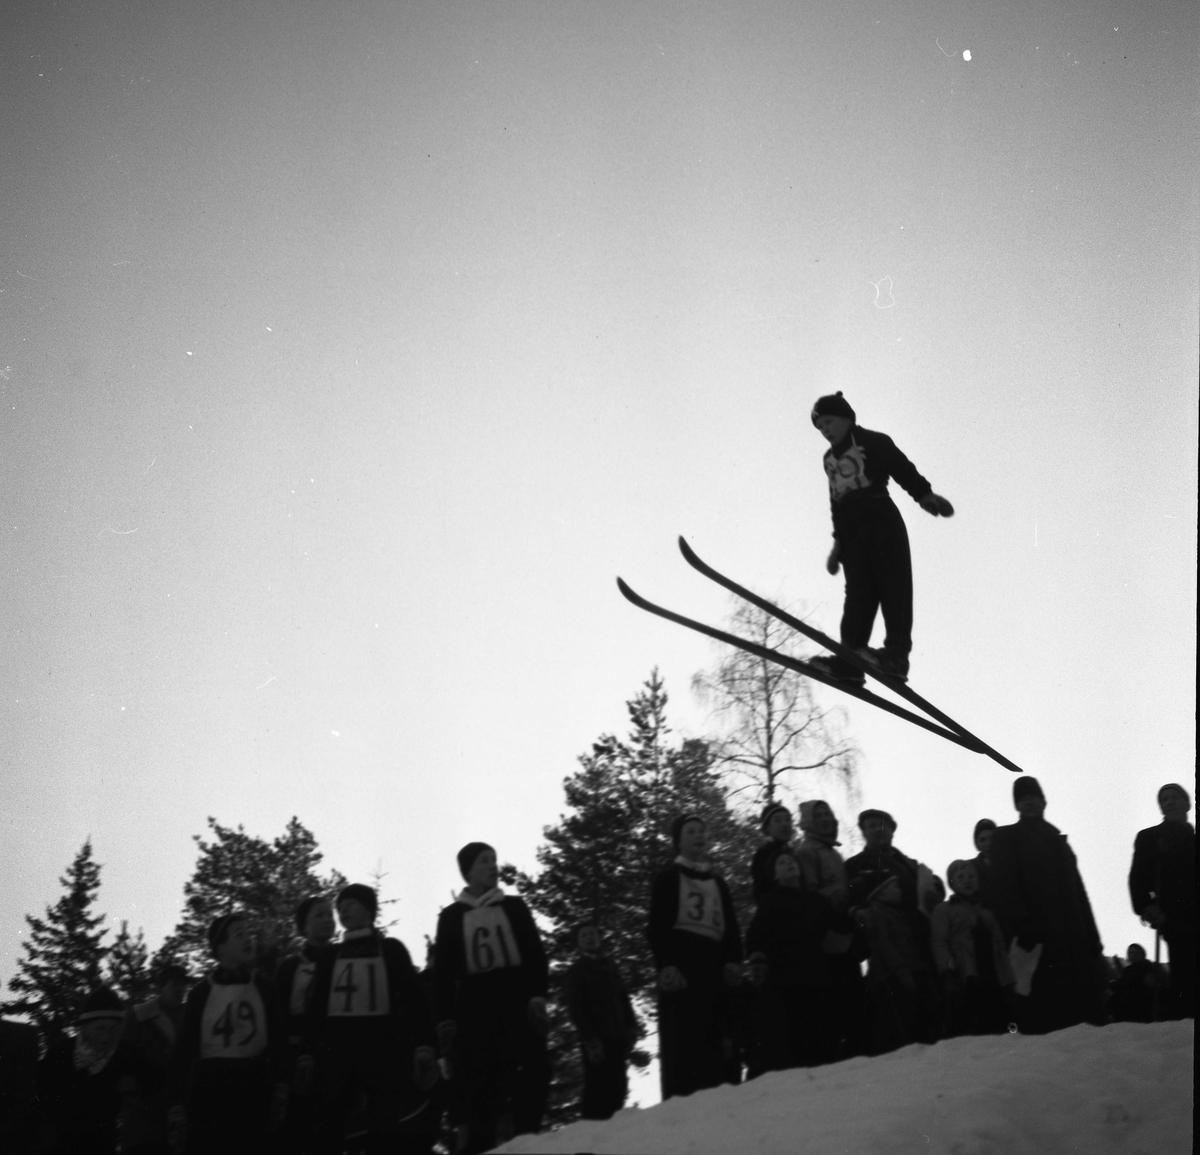 Ski jumping for young boys